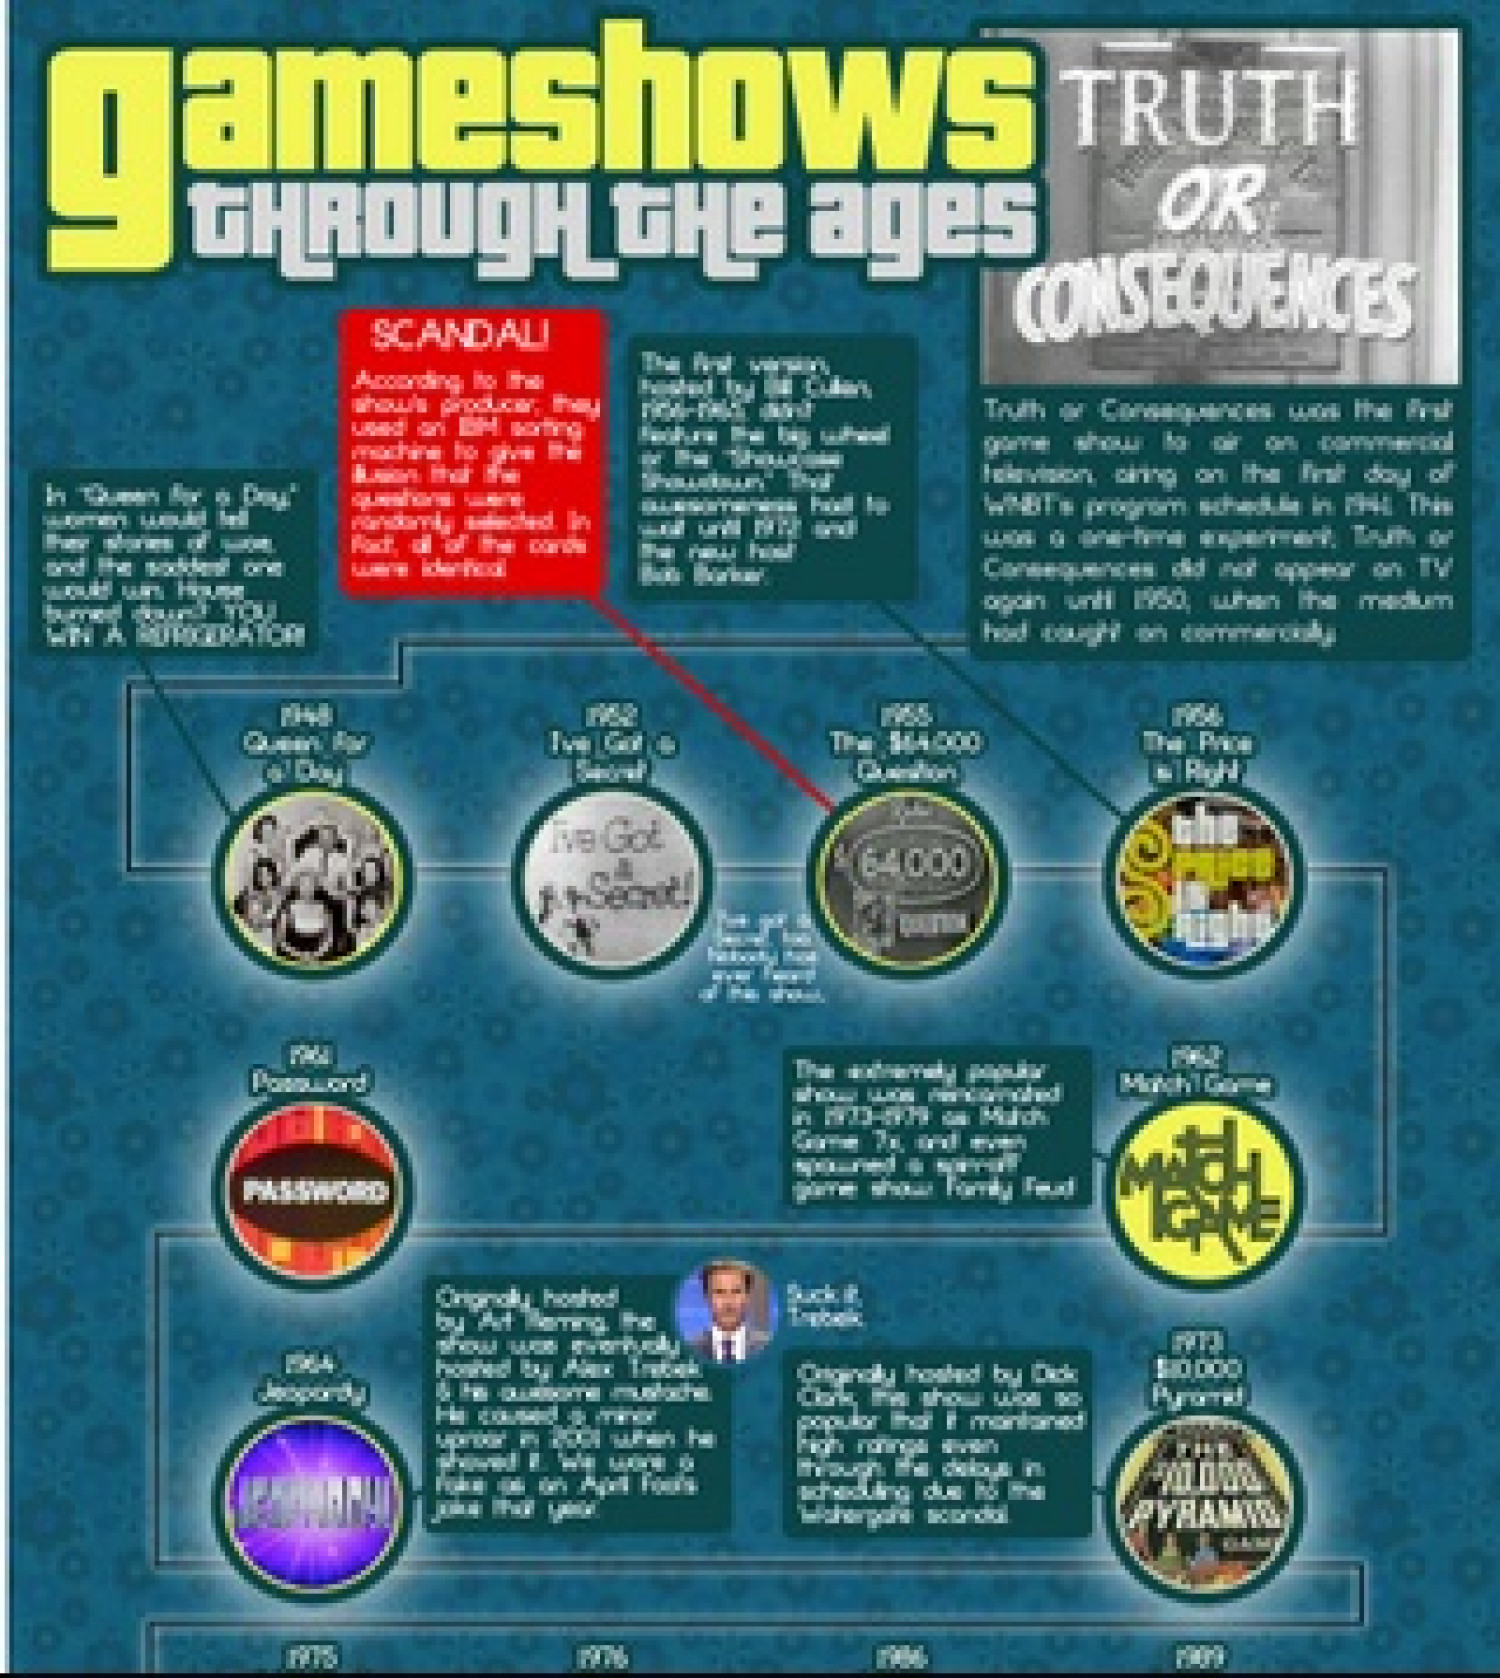 Game shows Through the Ages Infographic